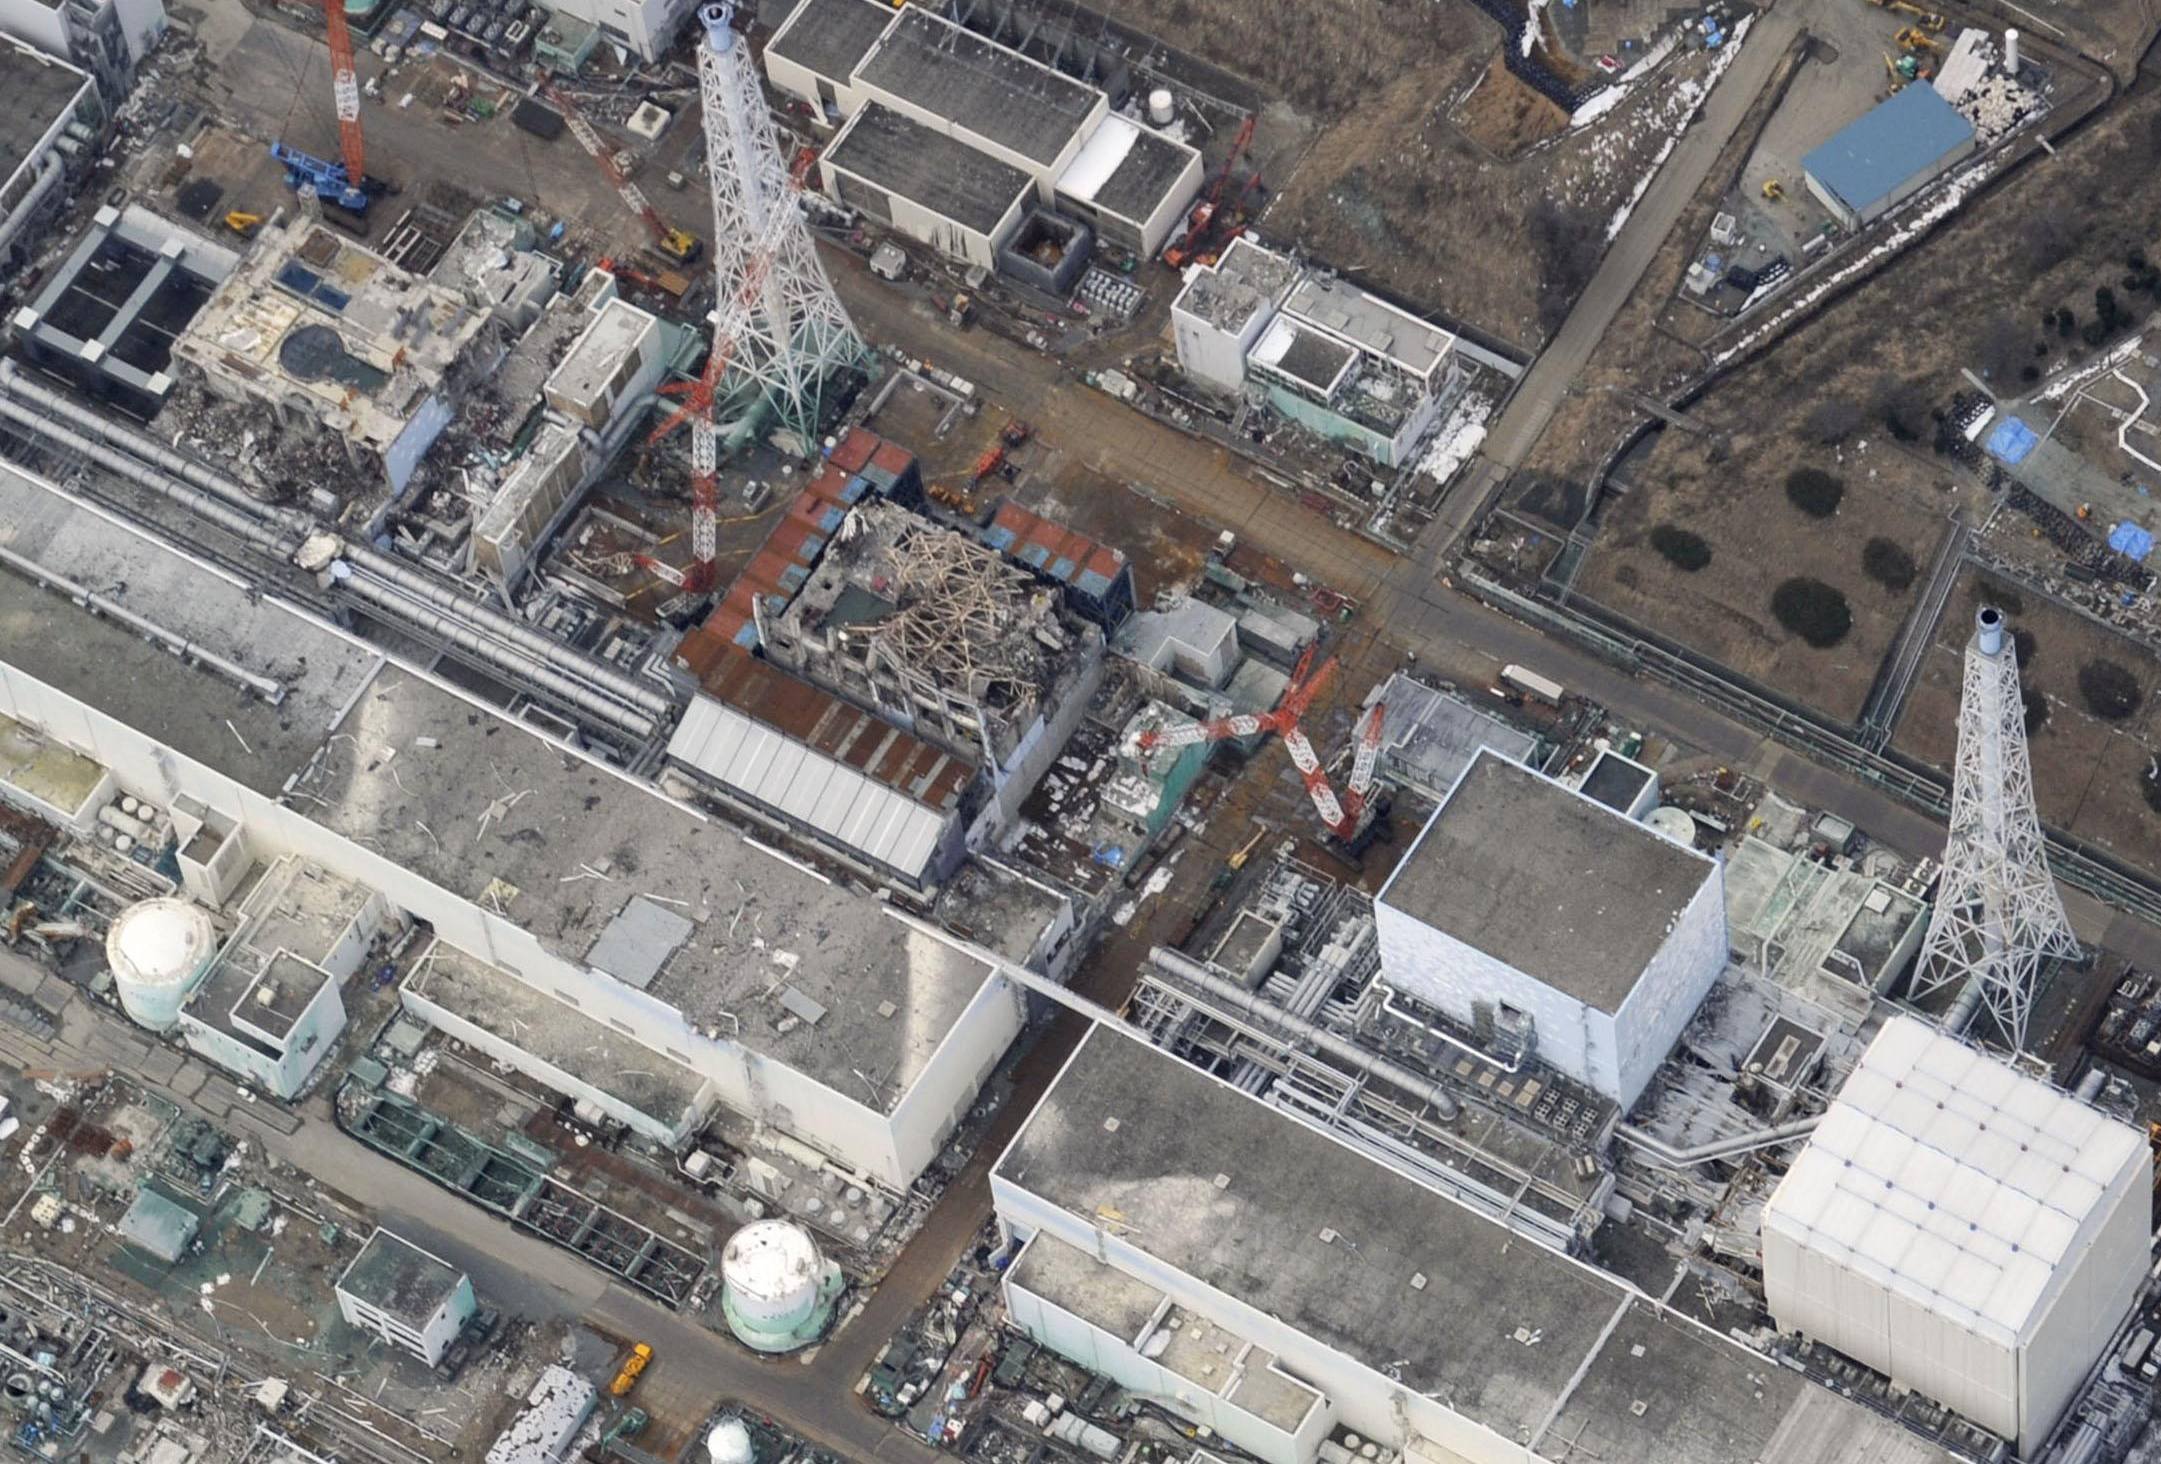 An aerial photo taken on Feb. 10 shows from left the reactors 1 to 4 at Fukushima No.1 power plant. The International Atomic Energy Agency plans to propose a multinational mission to decommission the wrecked reactors. | KYODO